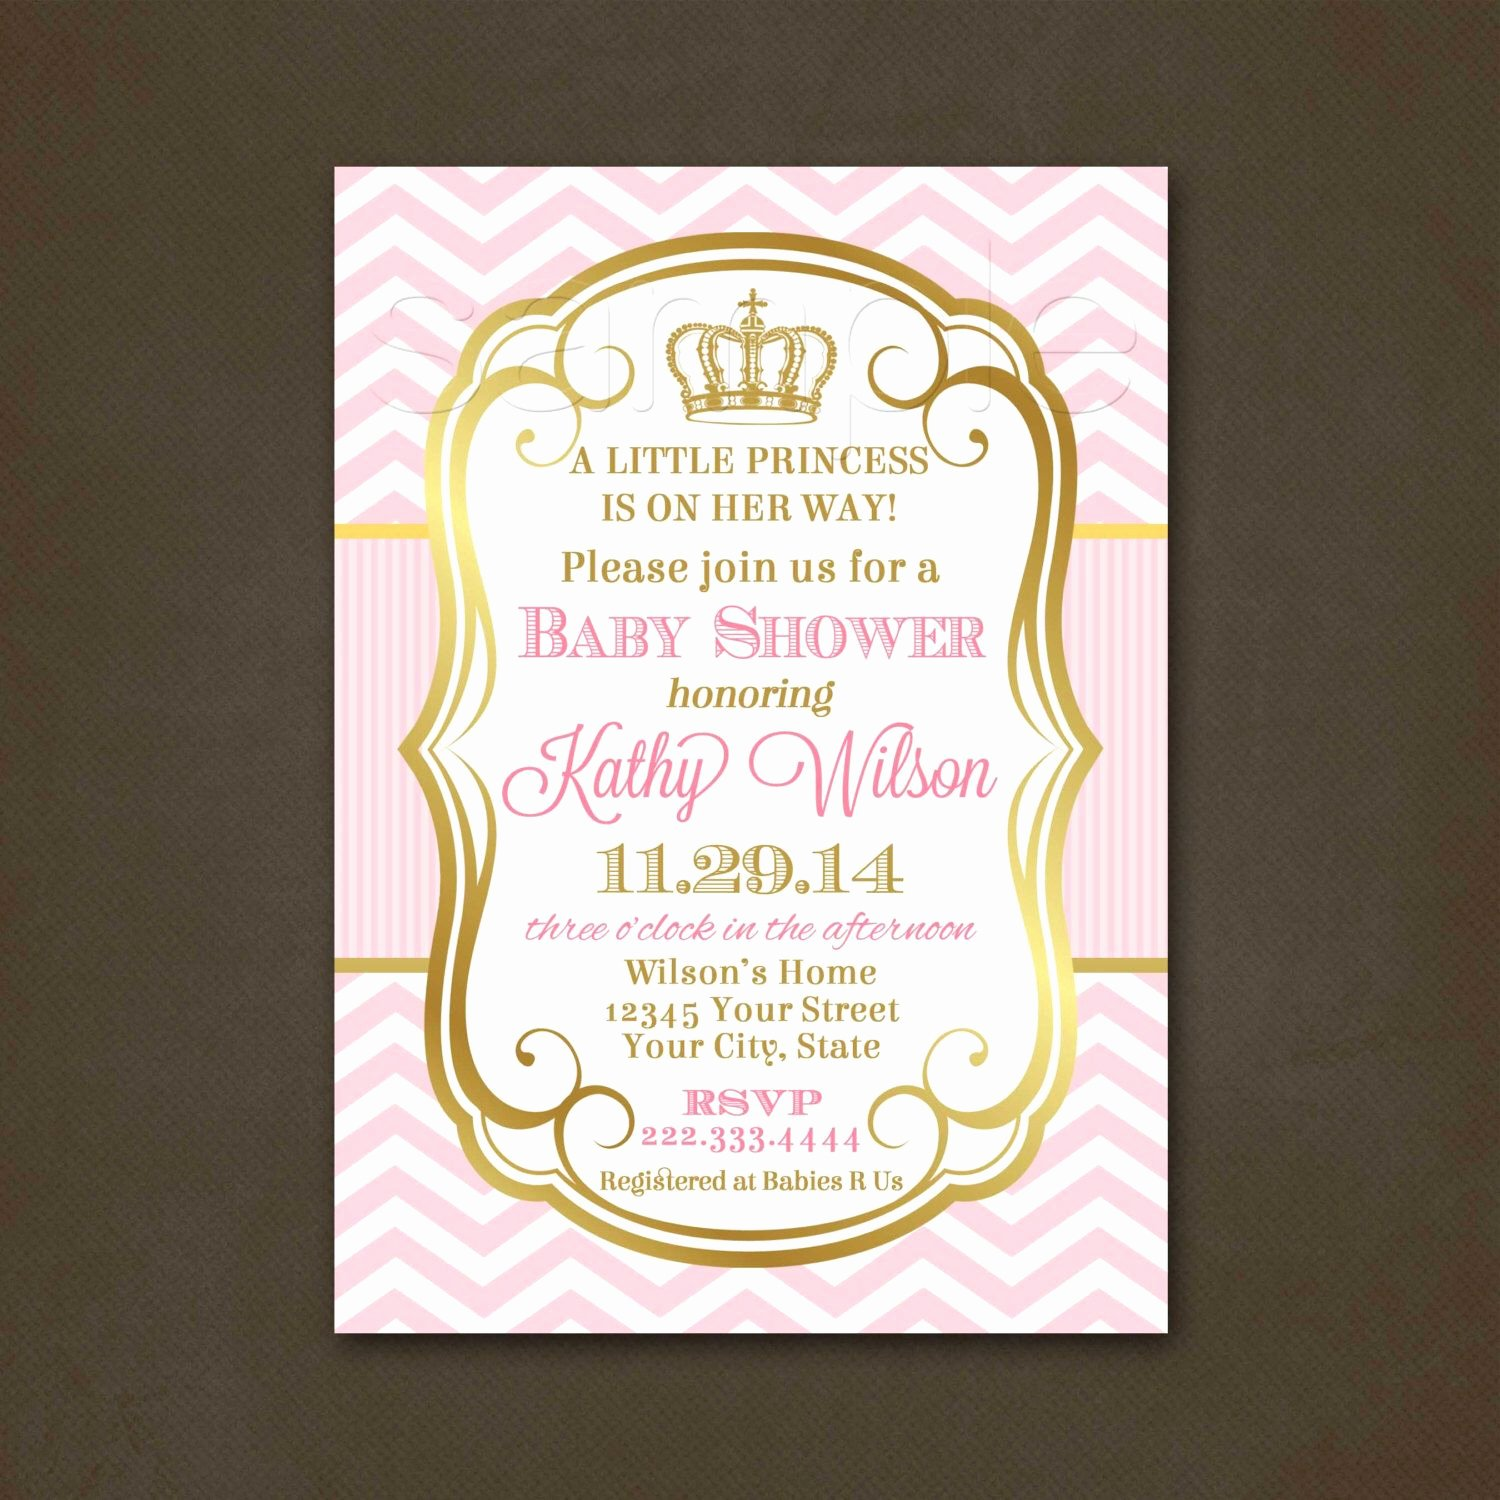 Princess Baby Shower Invitations Best Of Princess Baby Shower Invitation Baby Shower Invitation